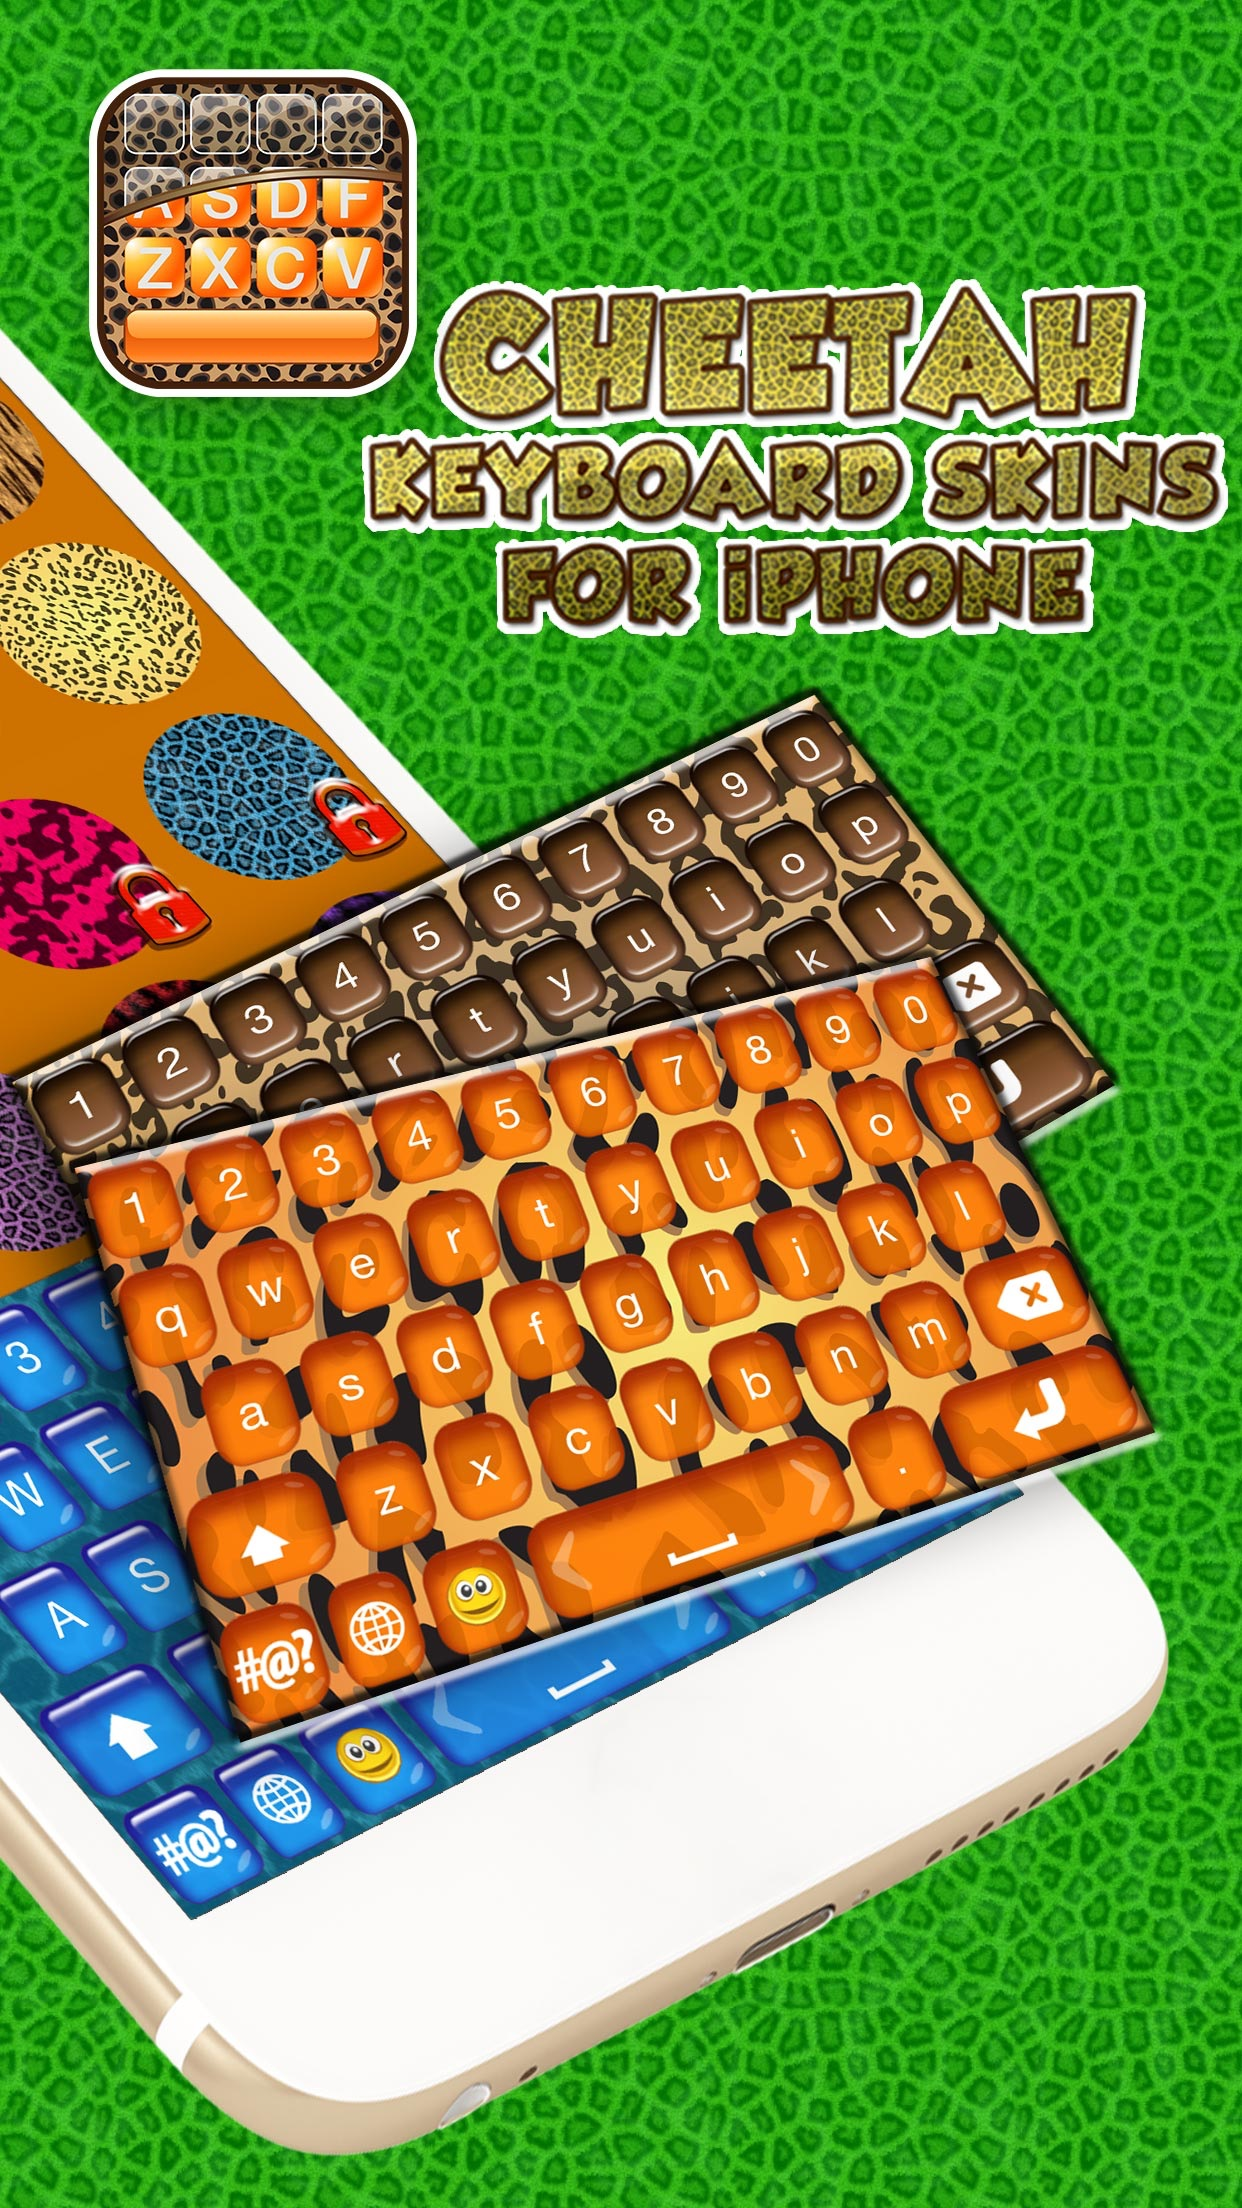 Cheetah Keyboard Skins for iPhone – Animal Print Design.s and Custom Themes Free Screenshot